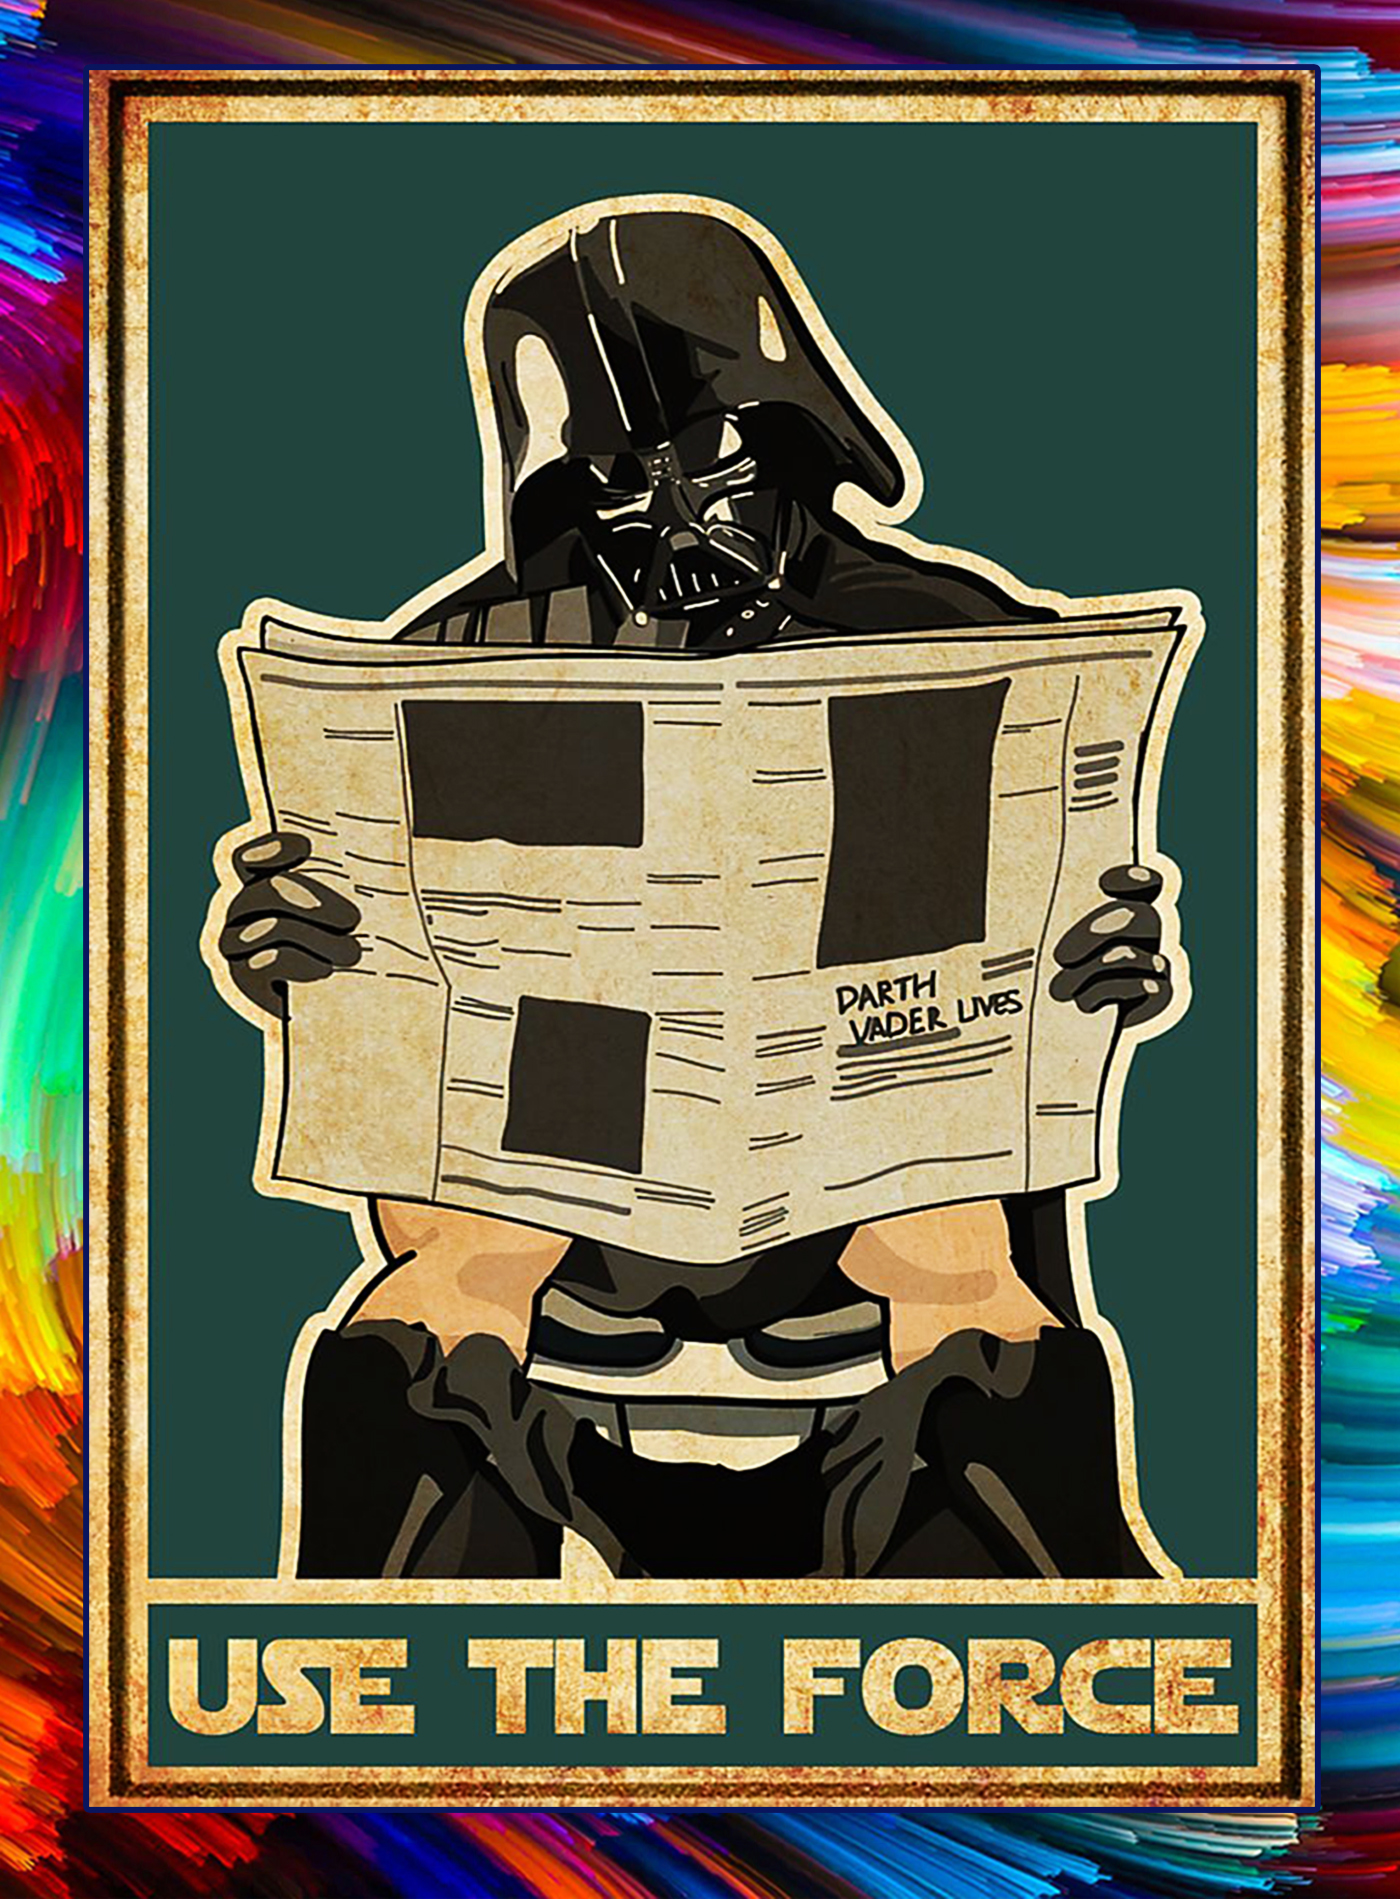 Darth vader use the force poster - A1